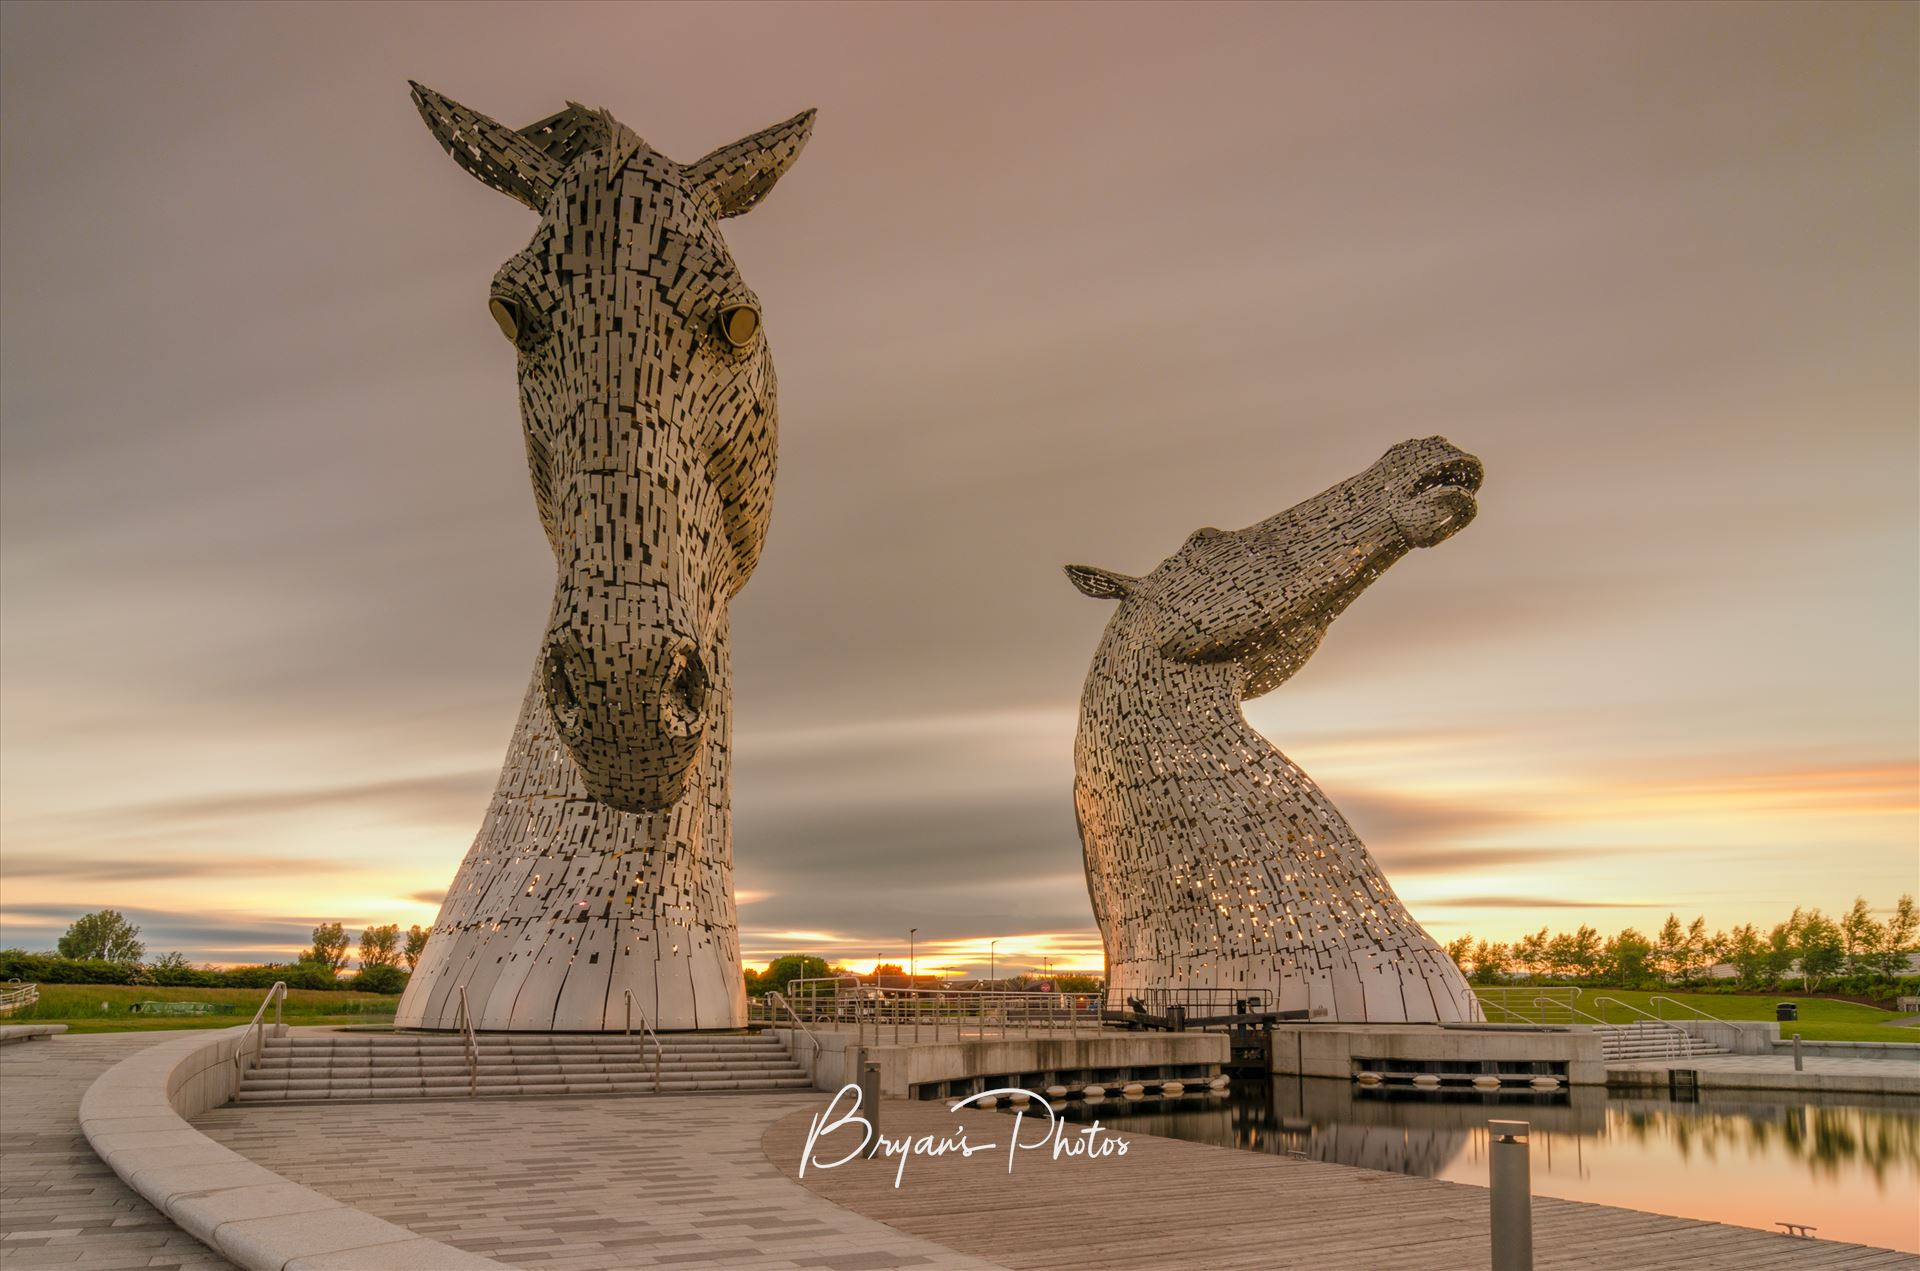 The Kelpies A long exposure Photograph of the Kelpies taken as the sunsets. by Bryans Photos